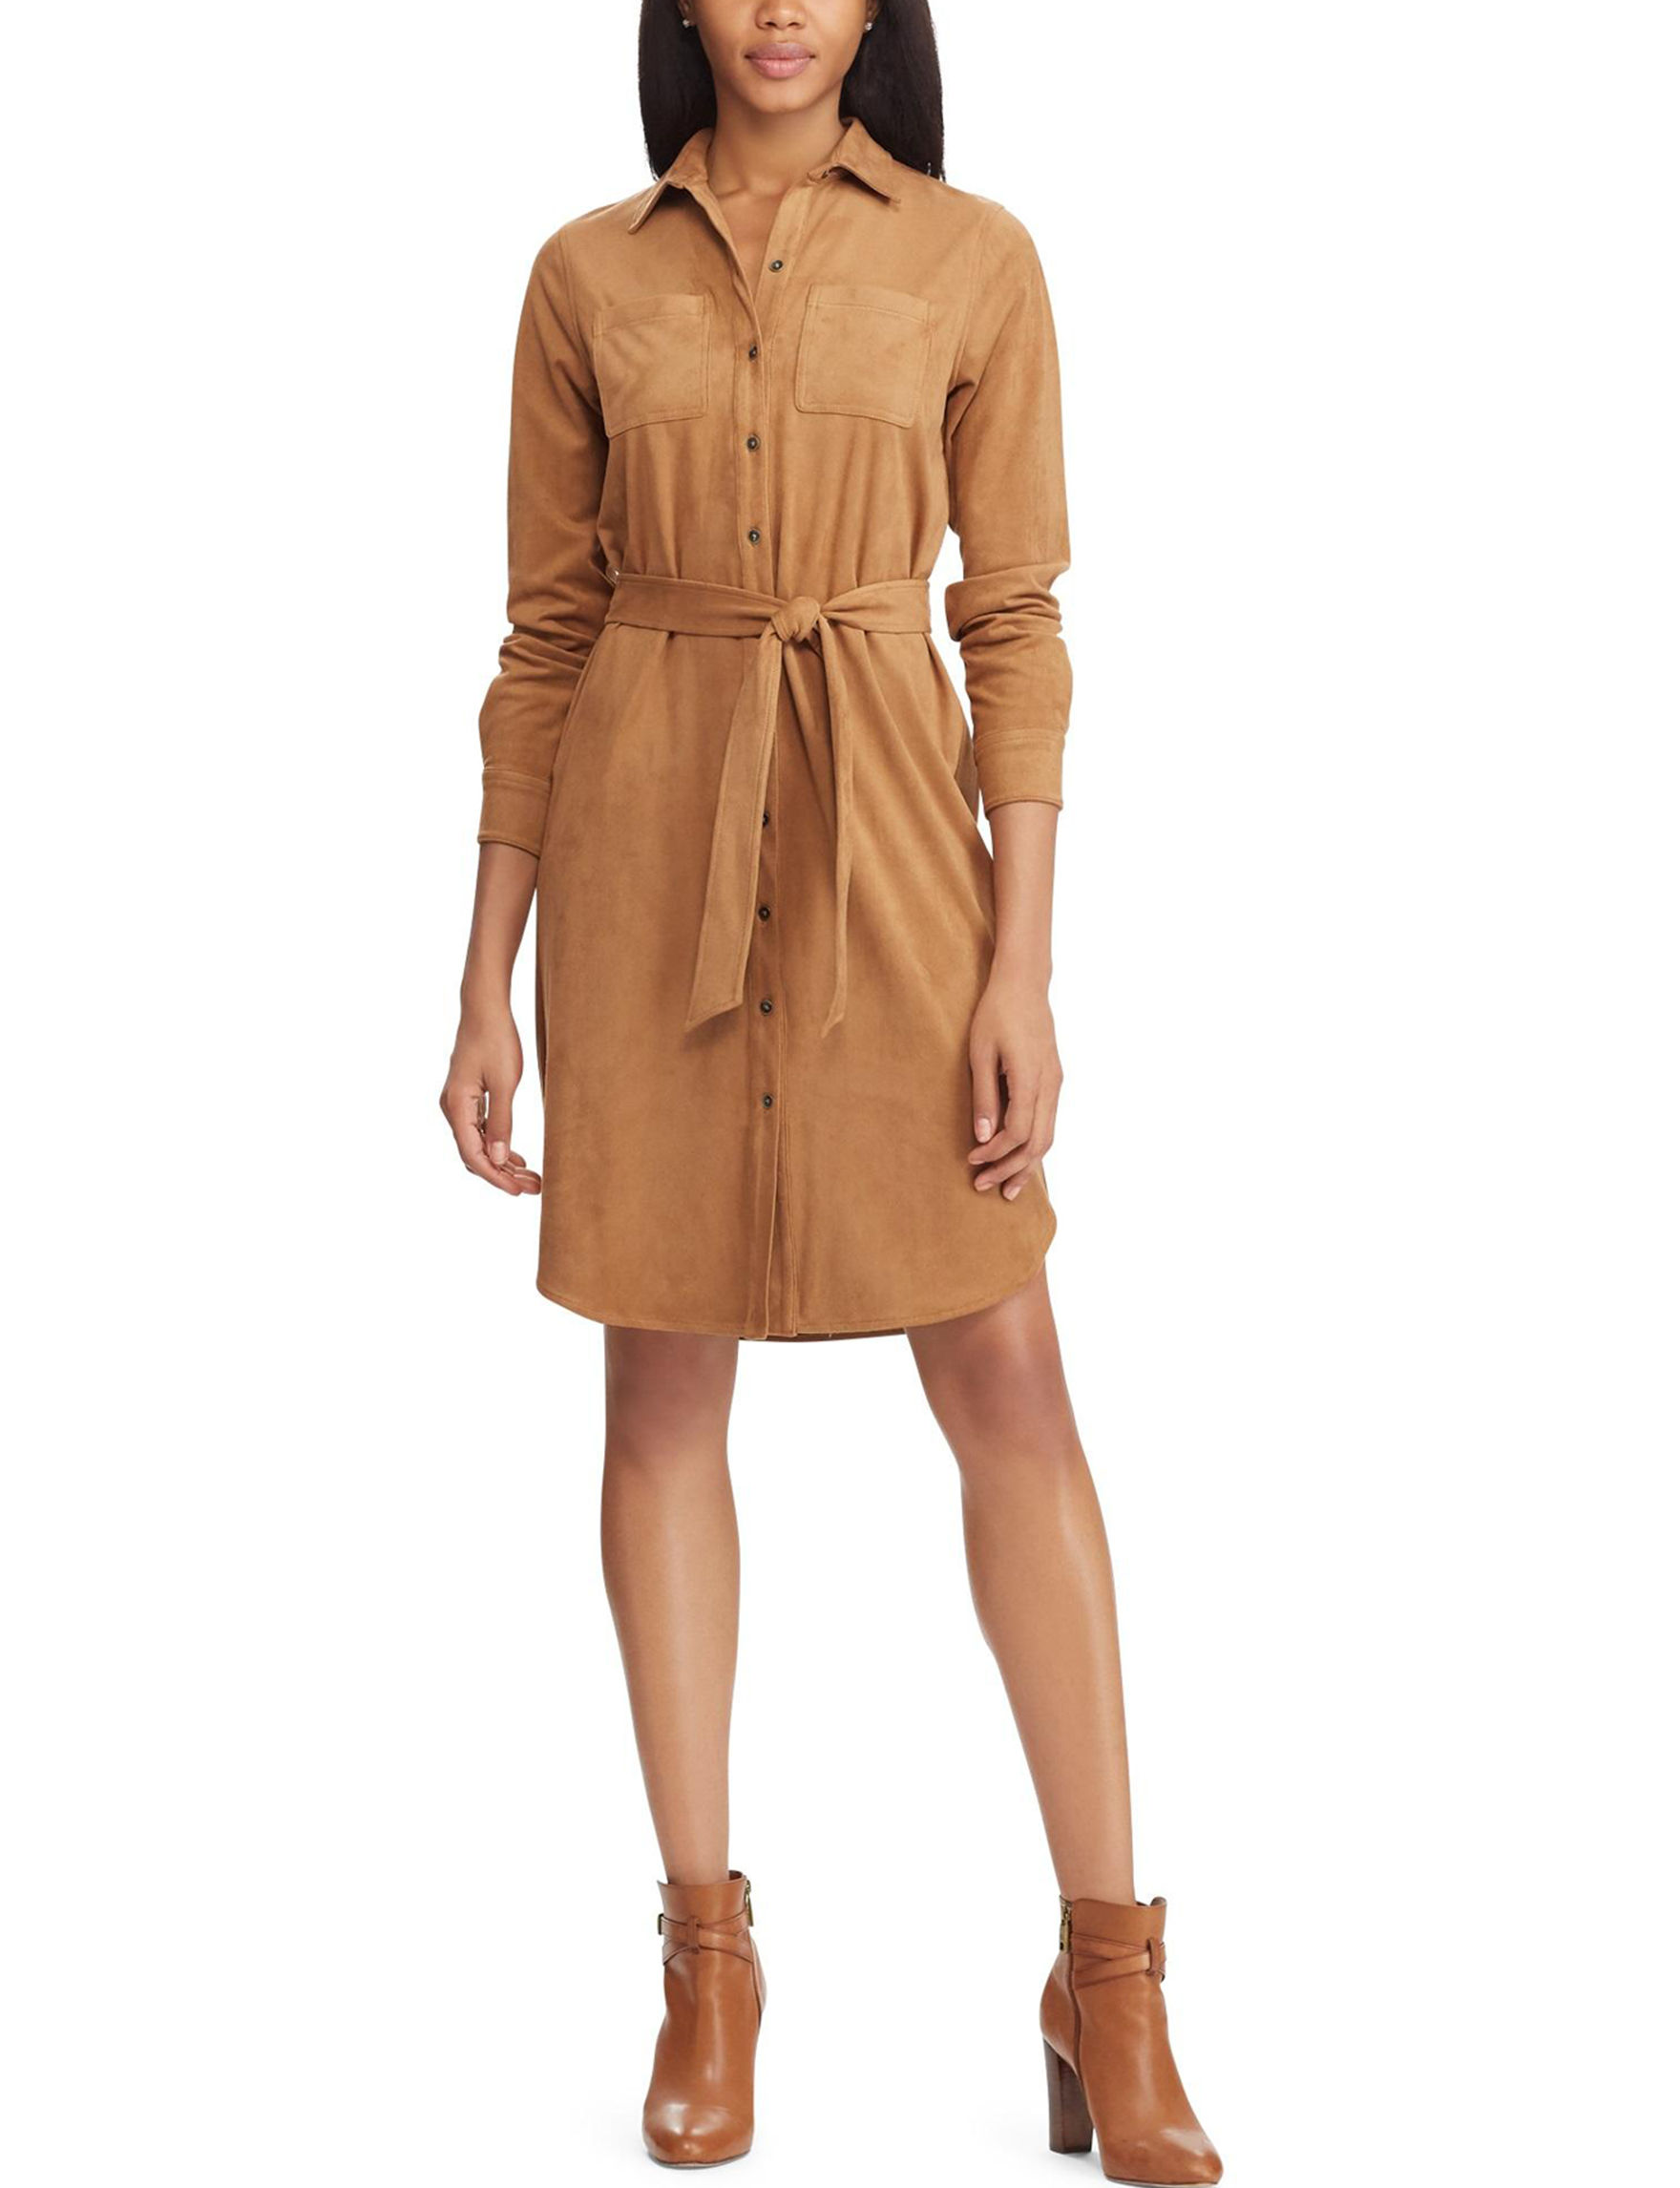 Chaps Brown Everyday & Casual Shirt Dresses